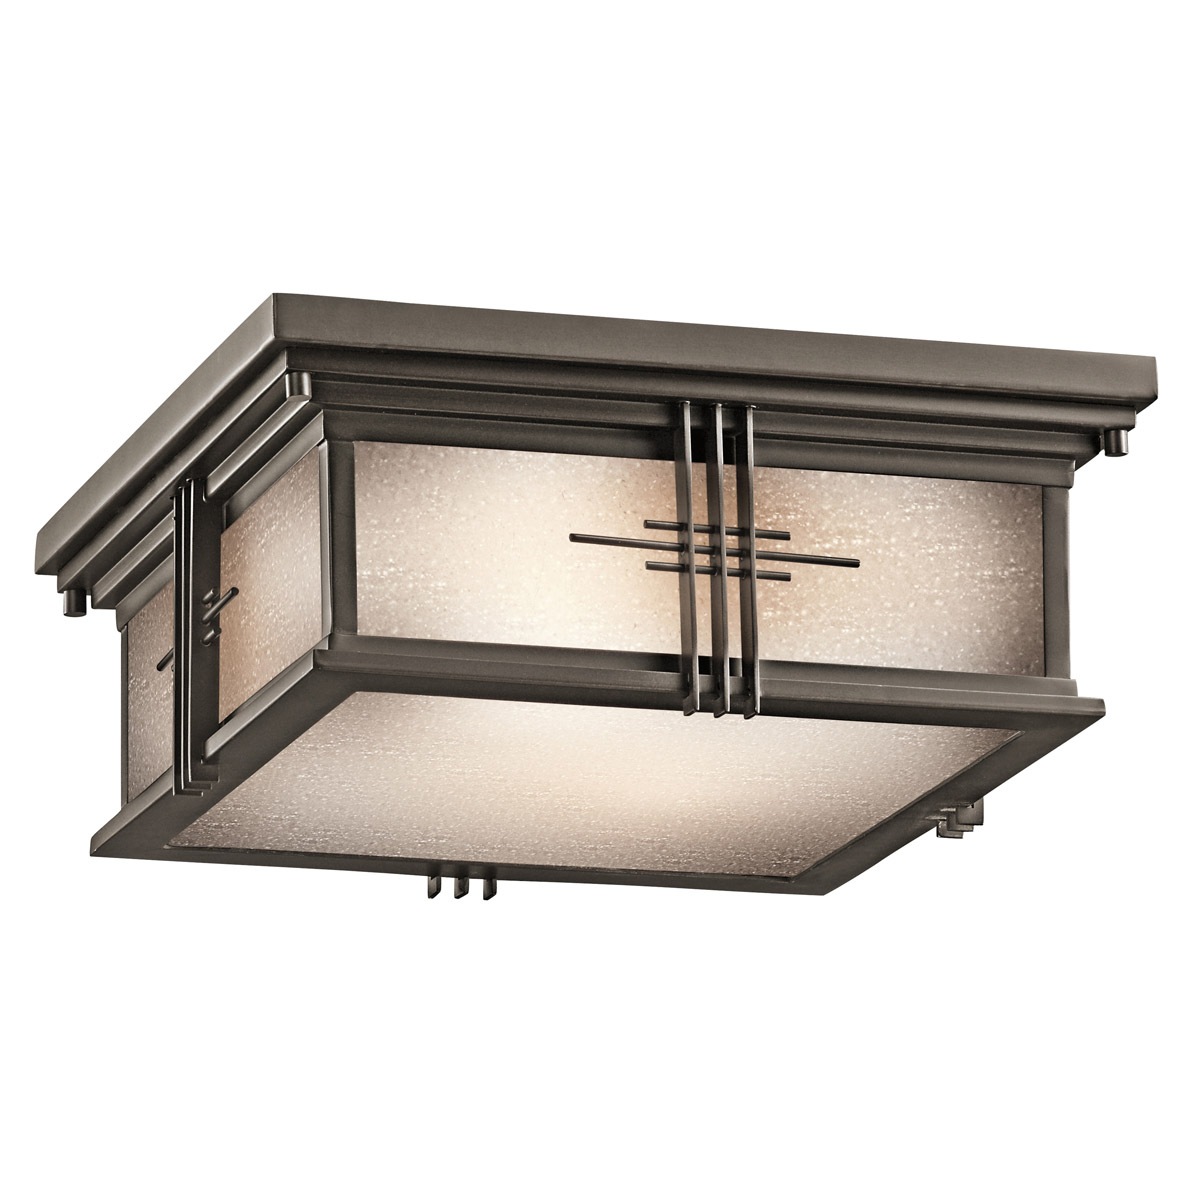 OZ Portman Square Outdoor Flush Mount Ceiling Fixture